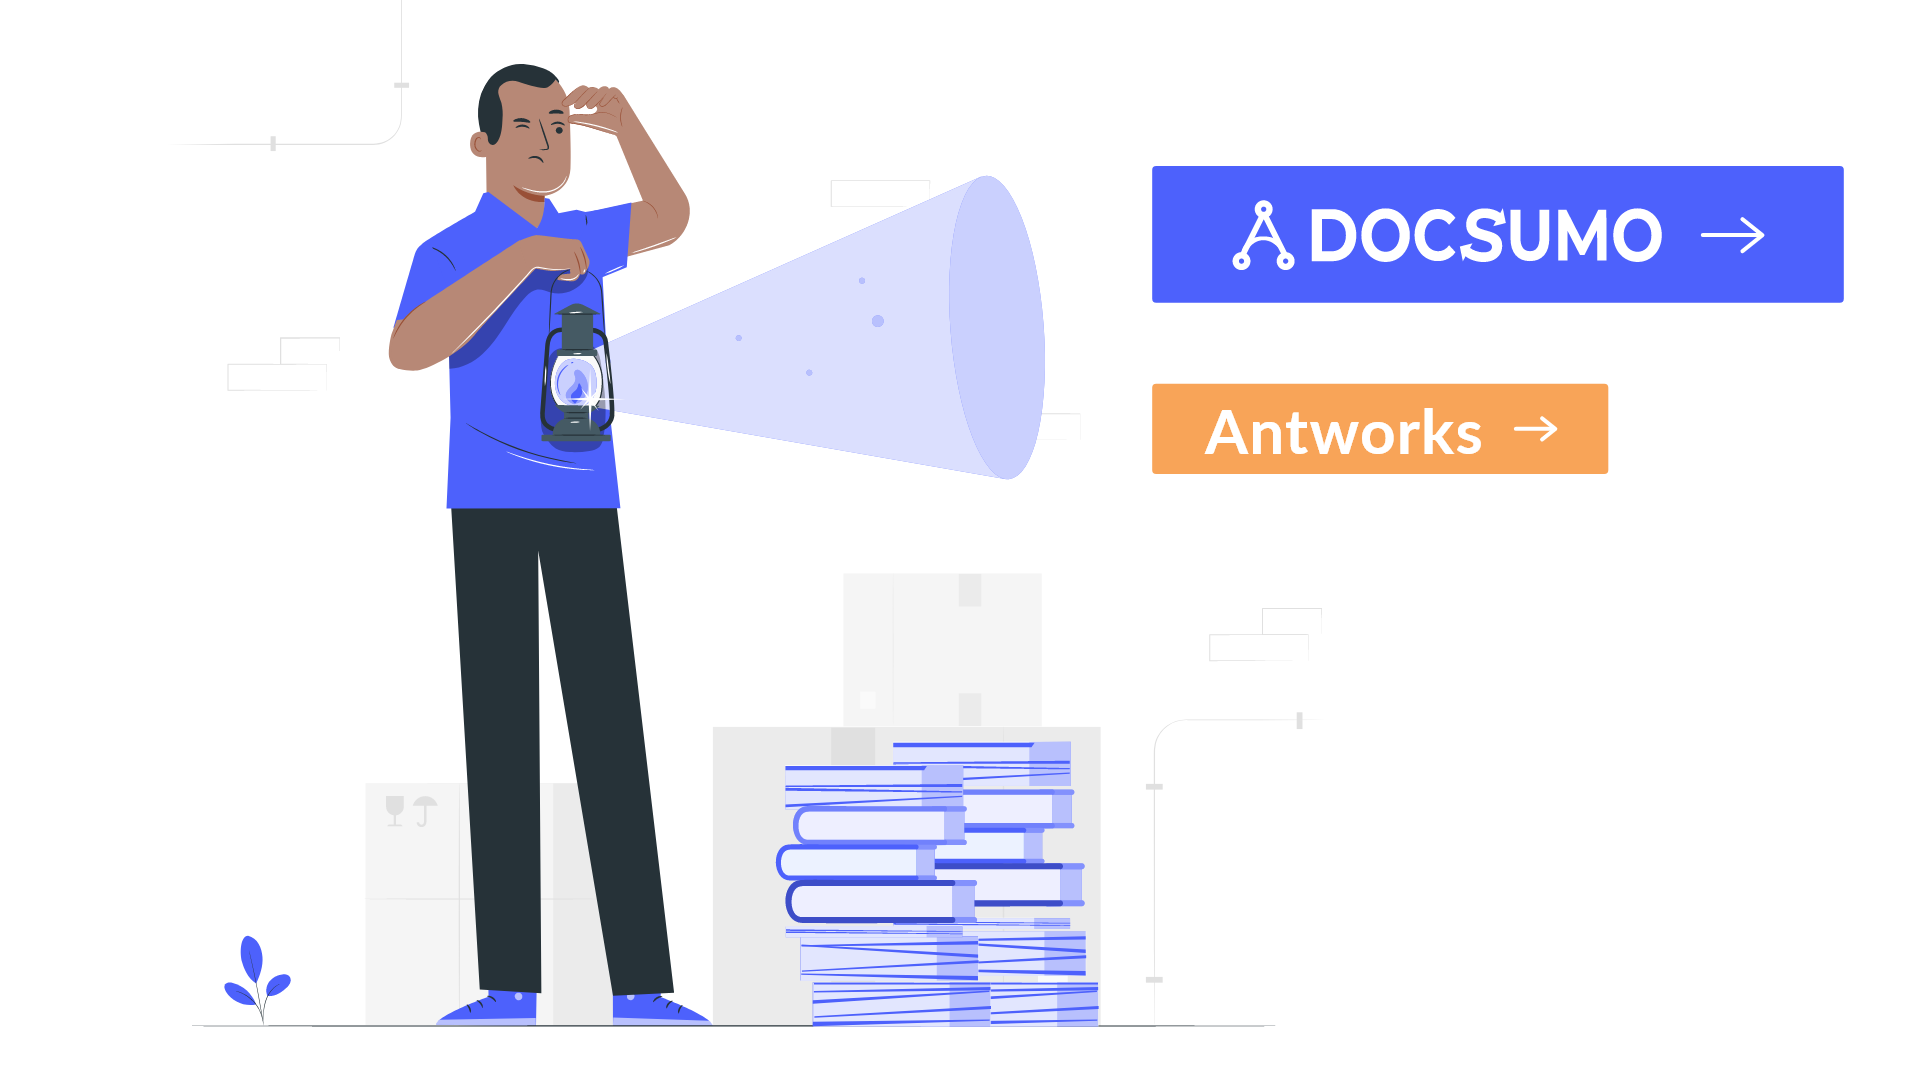 Reasons why you should consider Docsumo as a substitute to Ant.works